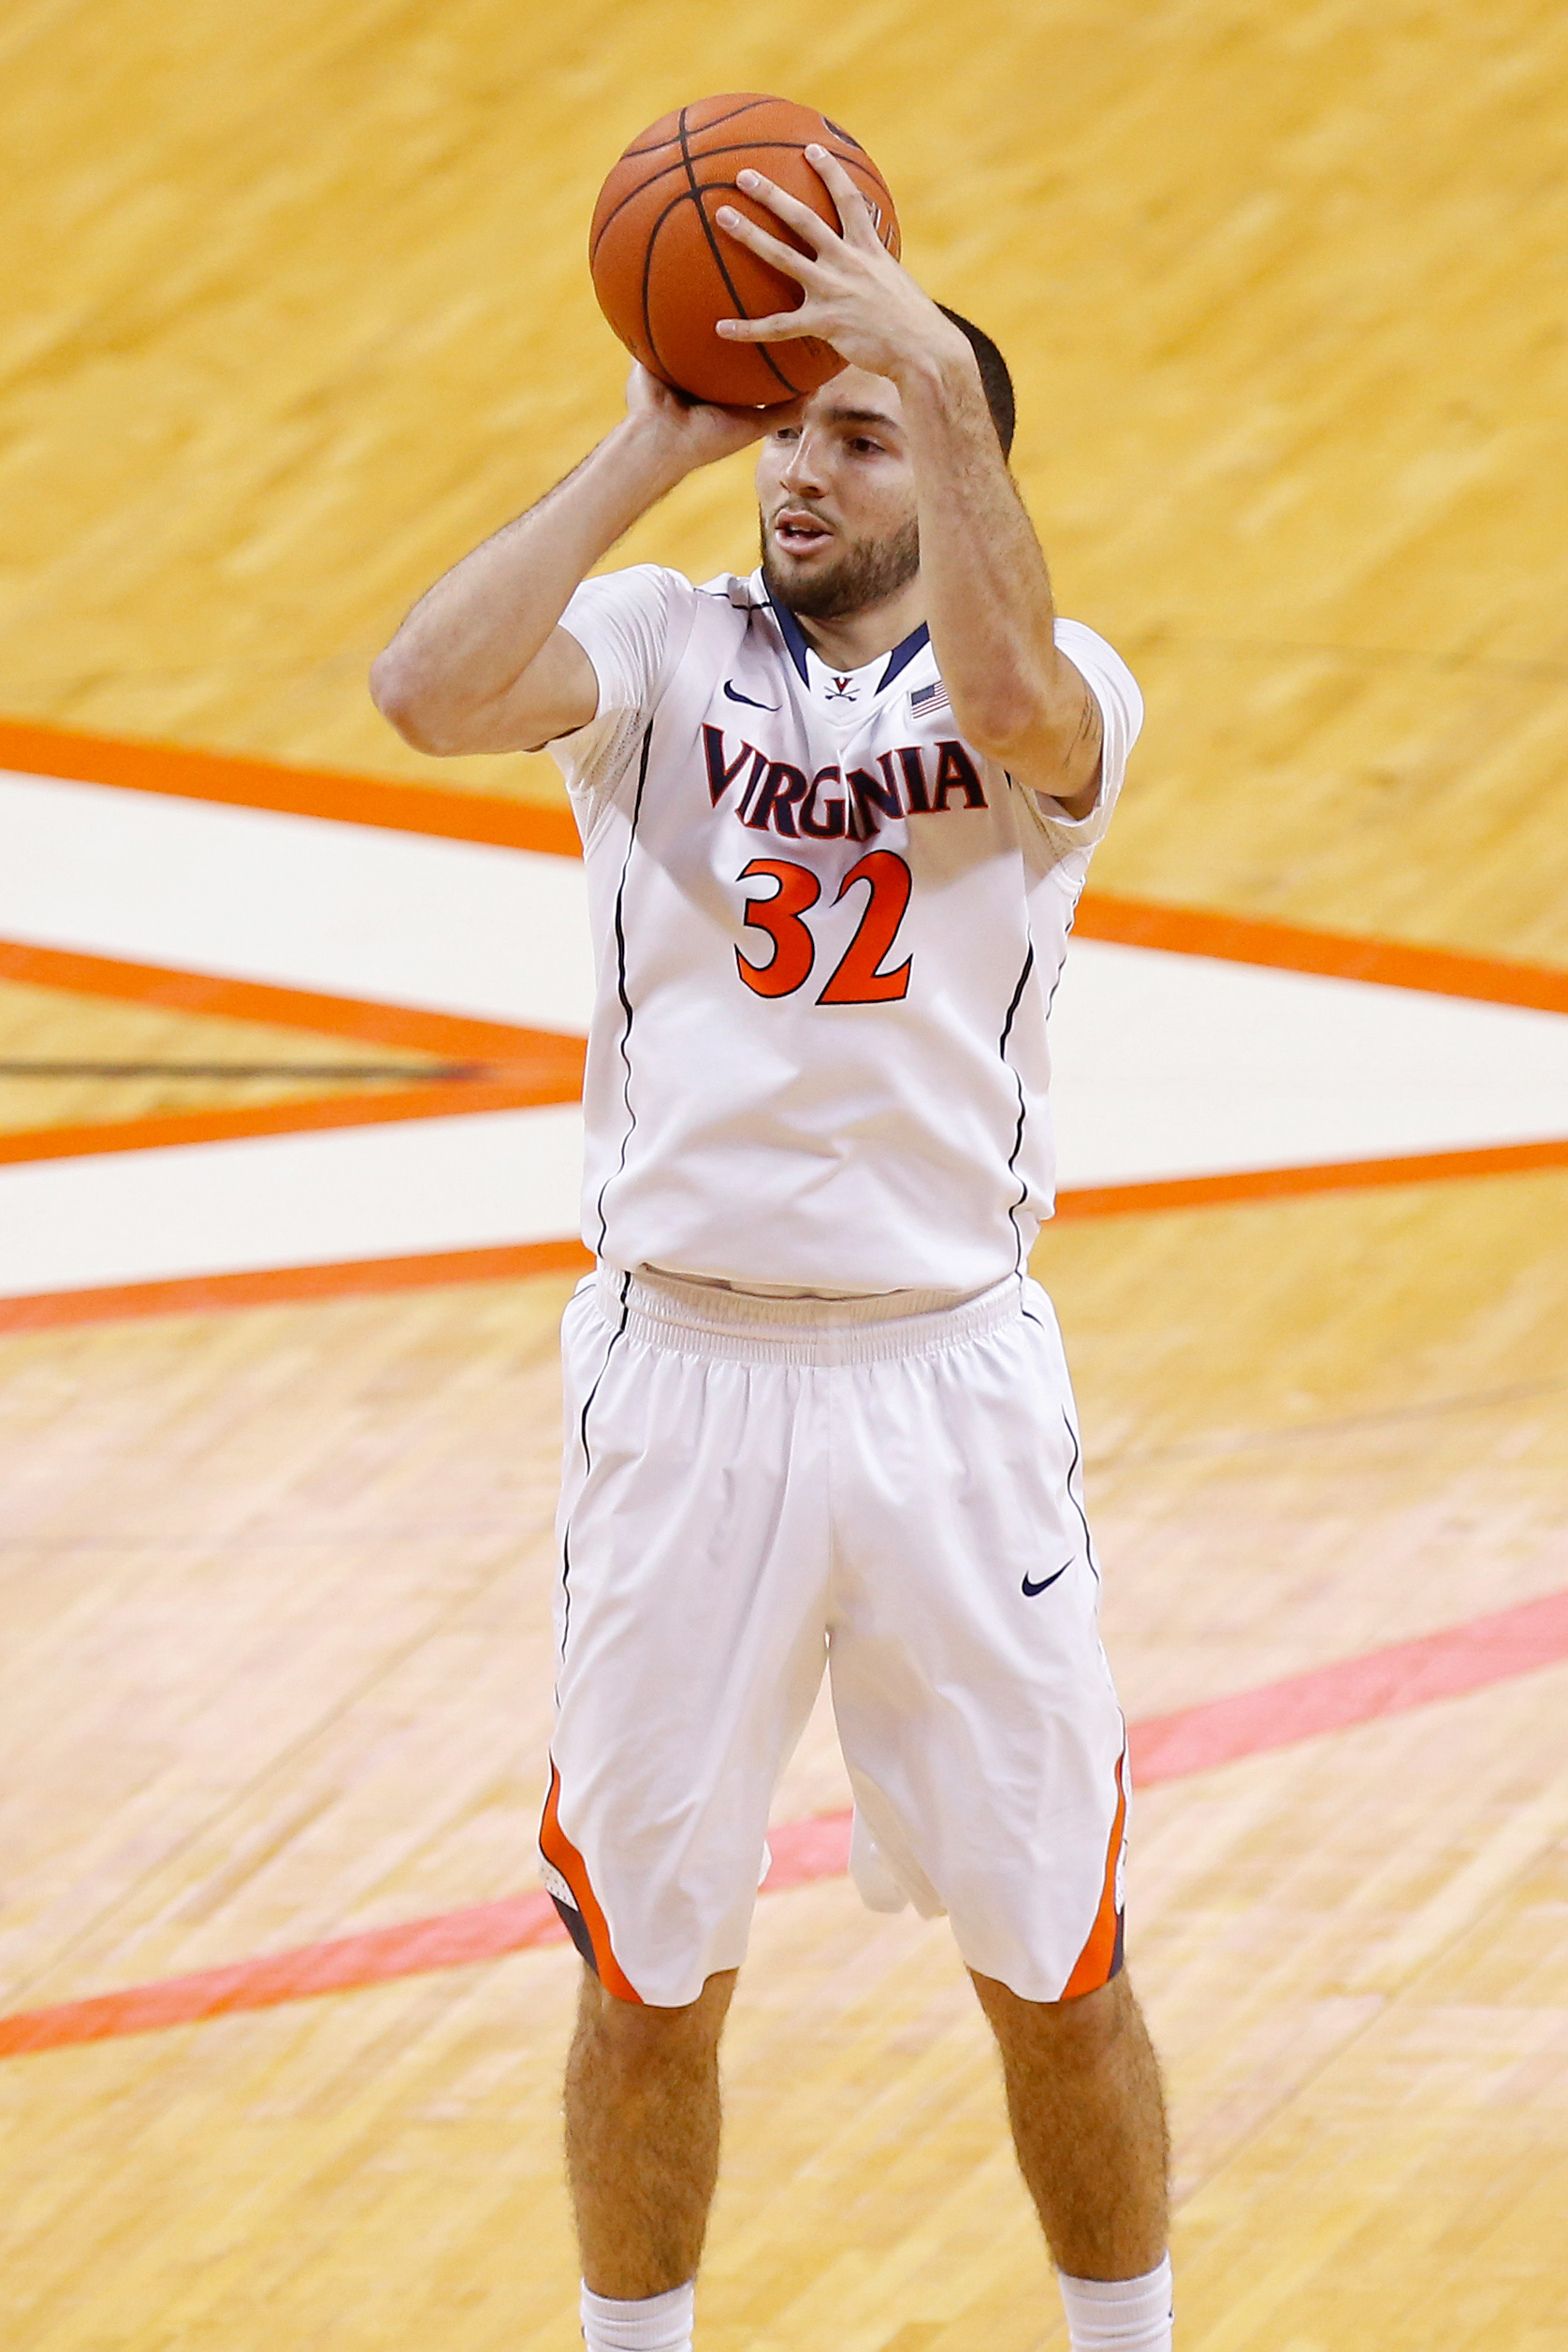 London Perrantes' growth could determine how the Hoos season ends up.